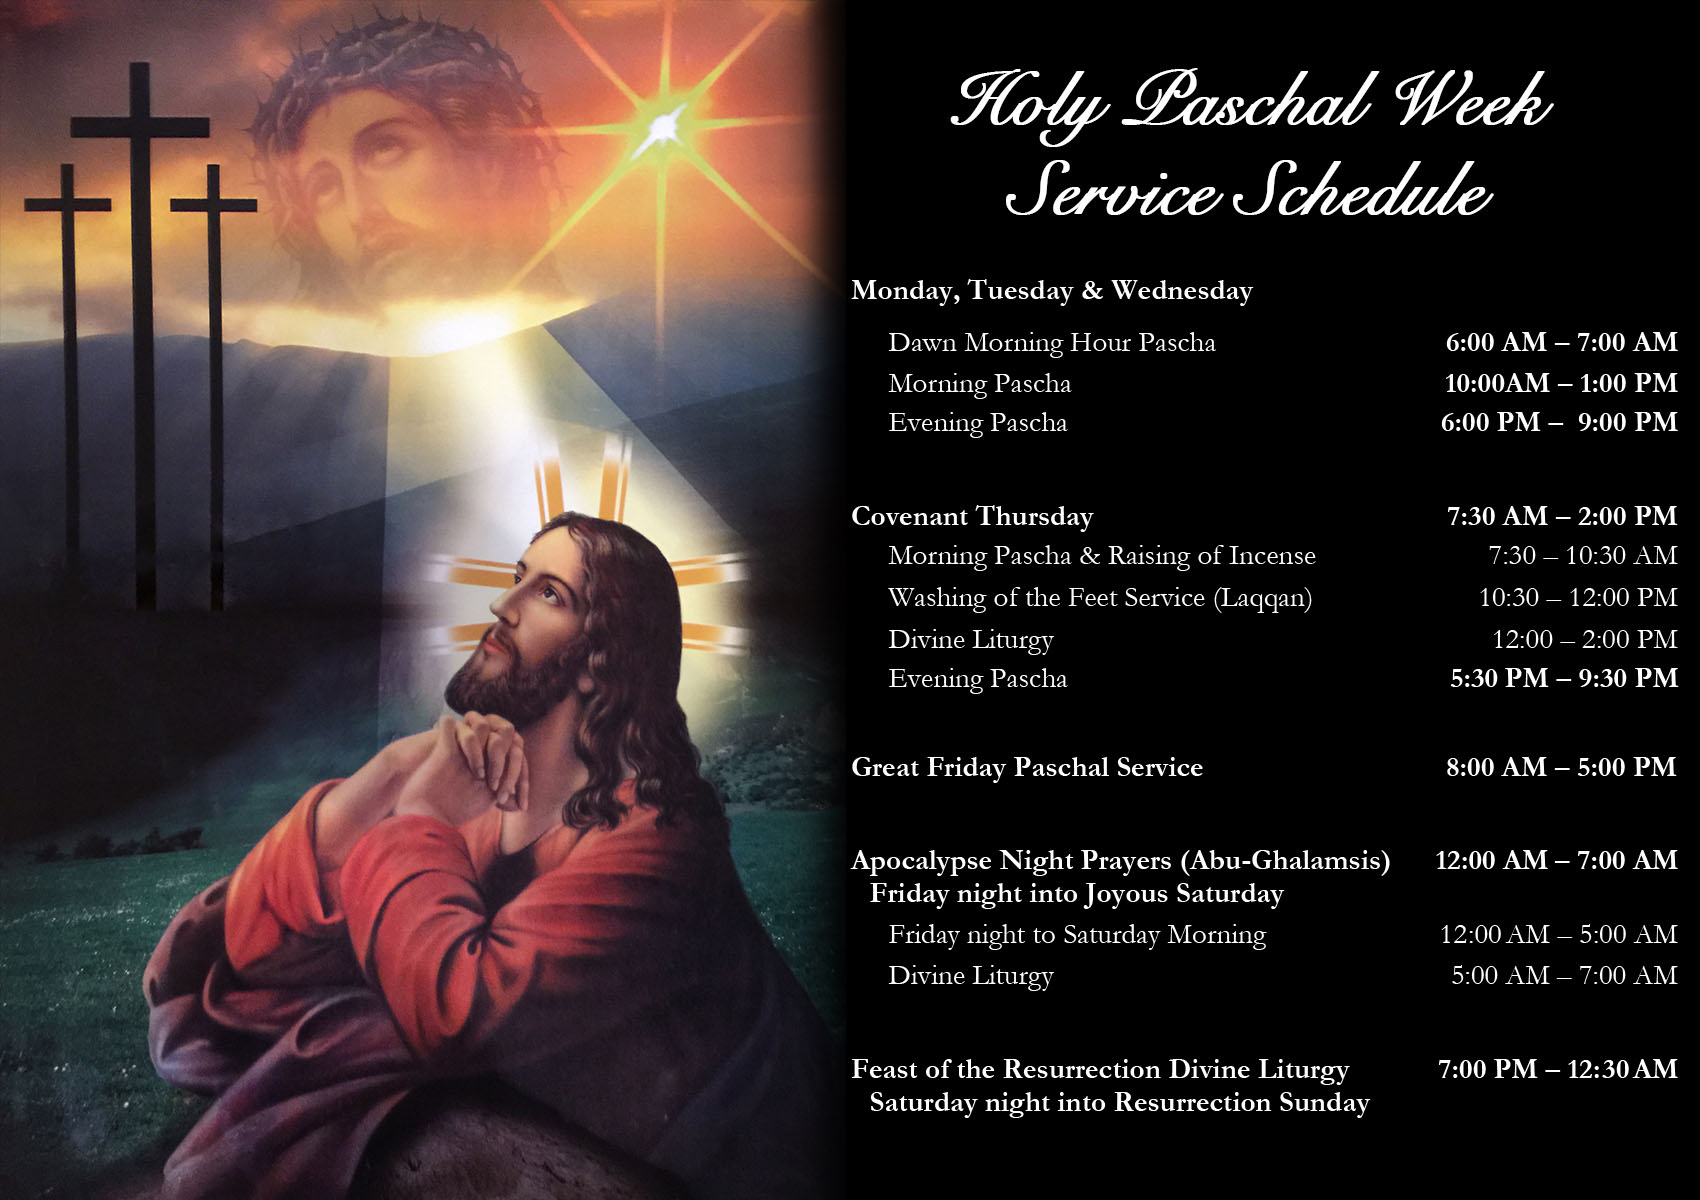 Web Schedule - Holy Week